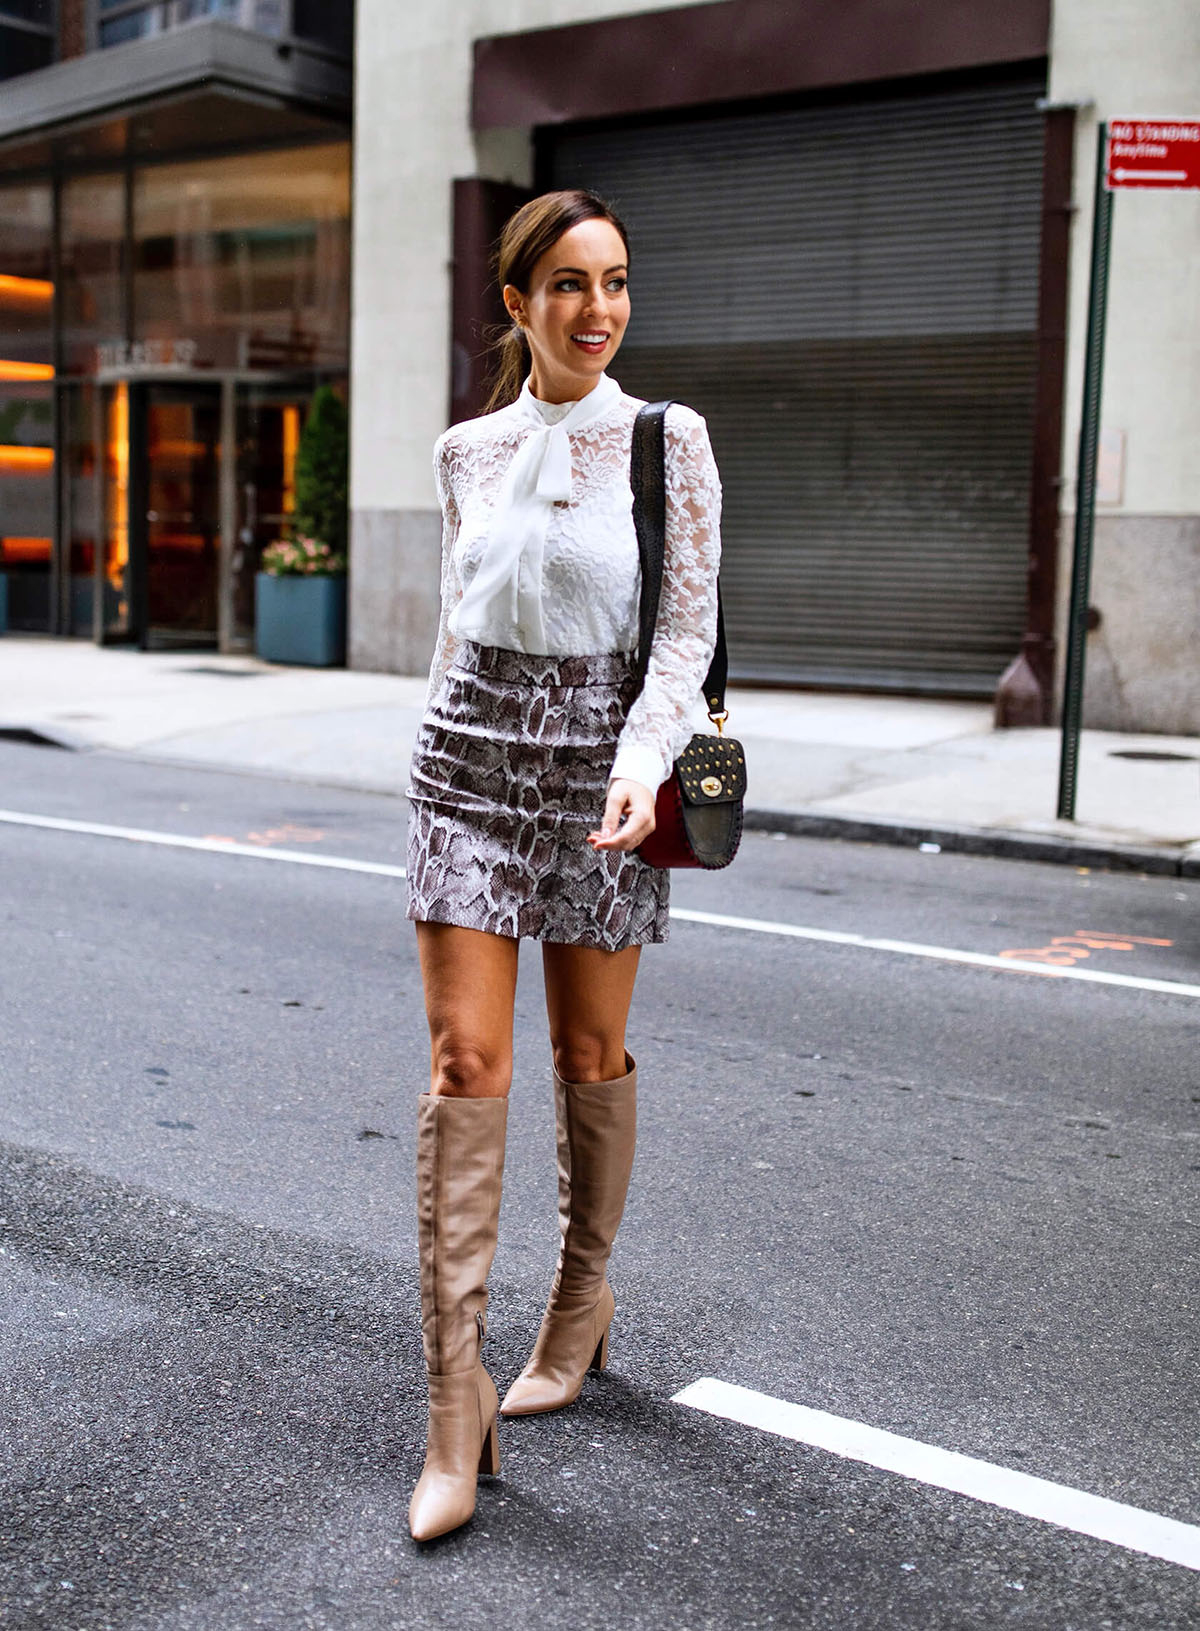 Sydne-Style-shows-the-best-fashion-week-street-style-in-the-snakeskin-trend